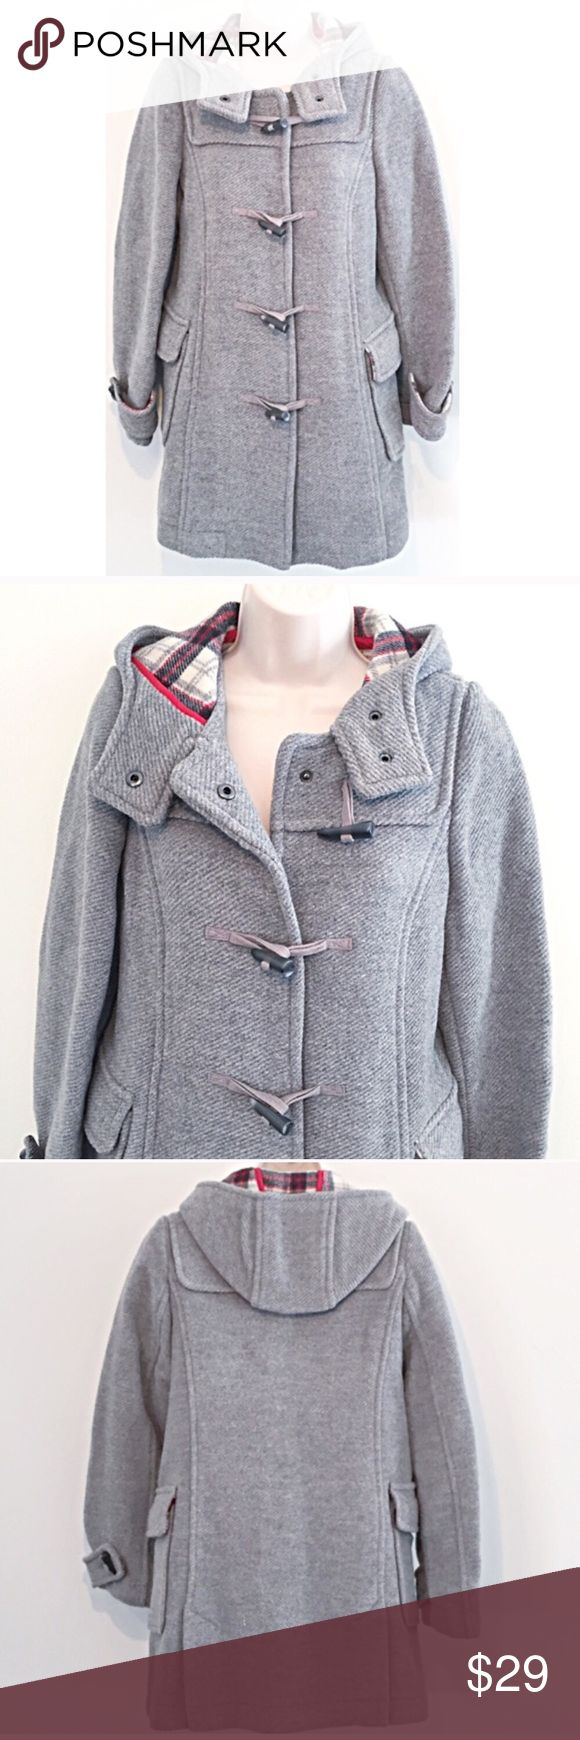 """❣️BOGO 1/2 off❣️🆕 Old Navy wool hooded pea coat Flawless / like new condition. Wool/acrylic/nylon blend. Red, white, & blue plaid lining. Size xs. Measures approx 32"""" long, 20"""" flat across chest, & 20"""" sleeves. ❣Bundle your likes for a private sale offer!❣ ✖️I do NOT MODEL✖️ 🔴Bundle to save! 🔴NO TRADES. 🔴REASONABLE offers welcome via offer button. Smoke free home. Fast shipping! Old Navy Jackets & Coats Pea Coats"""